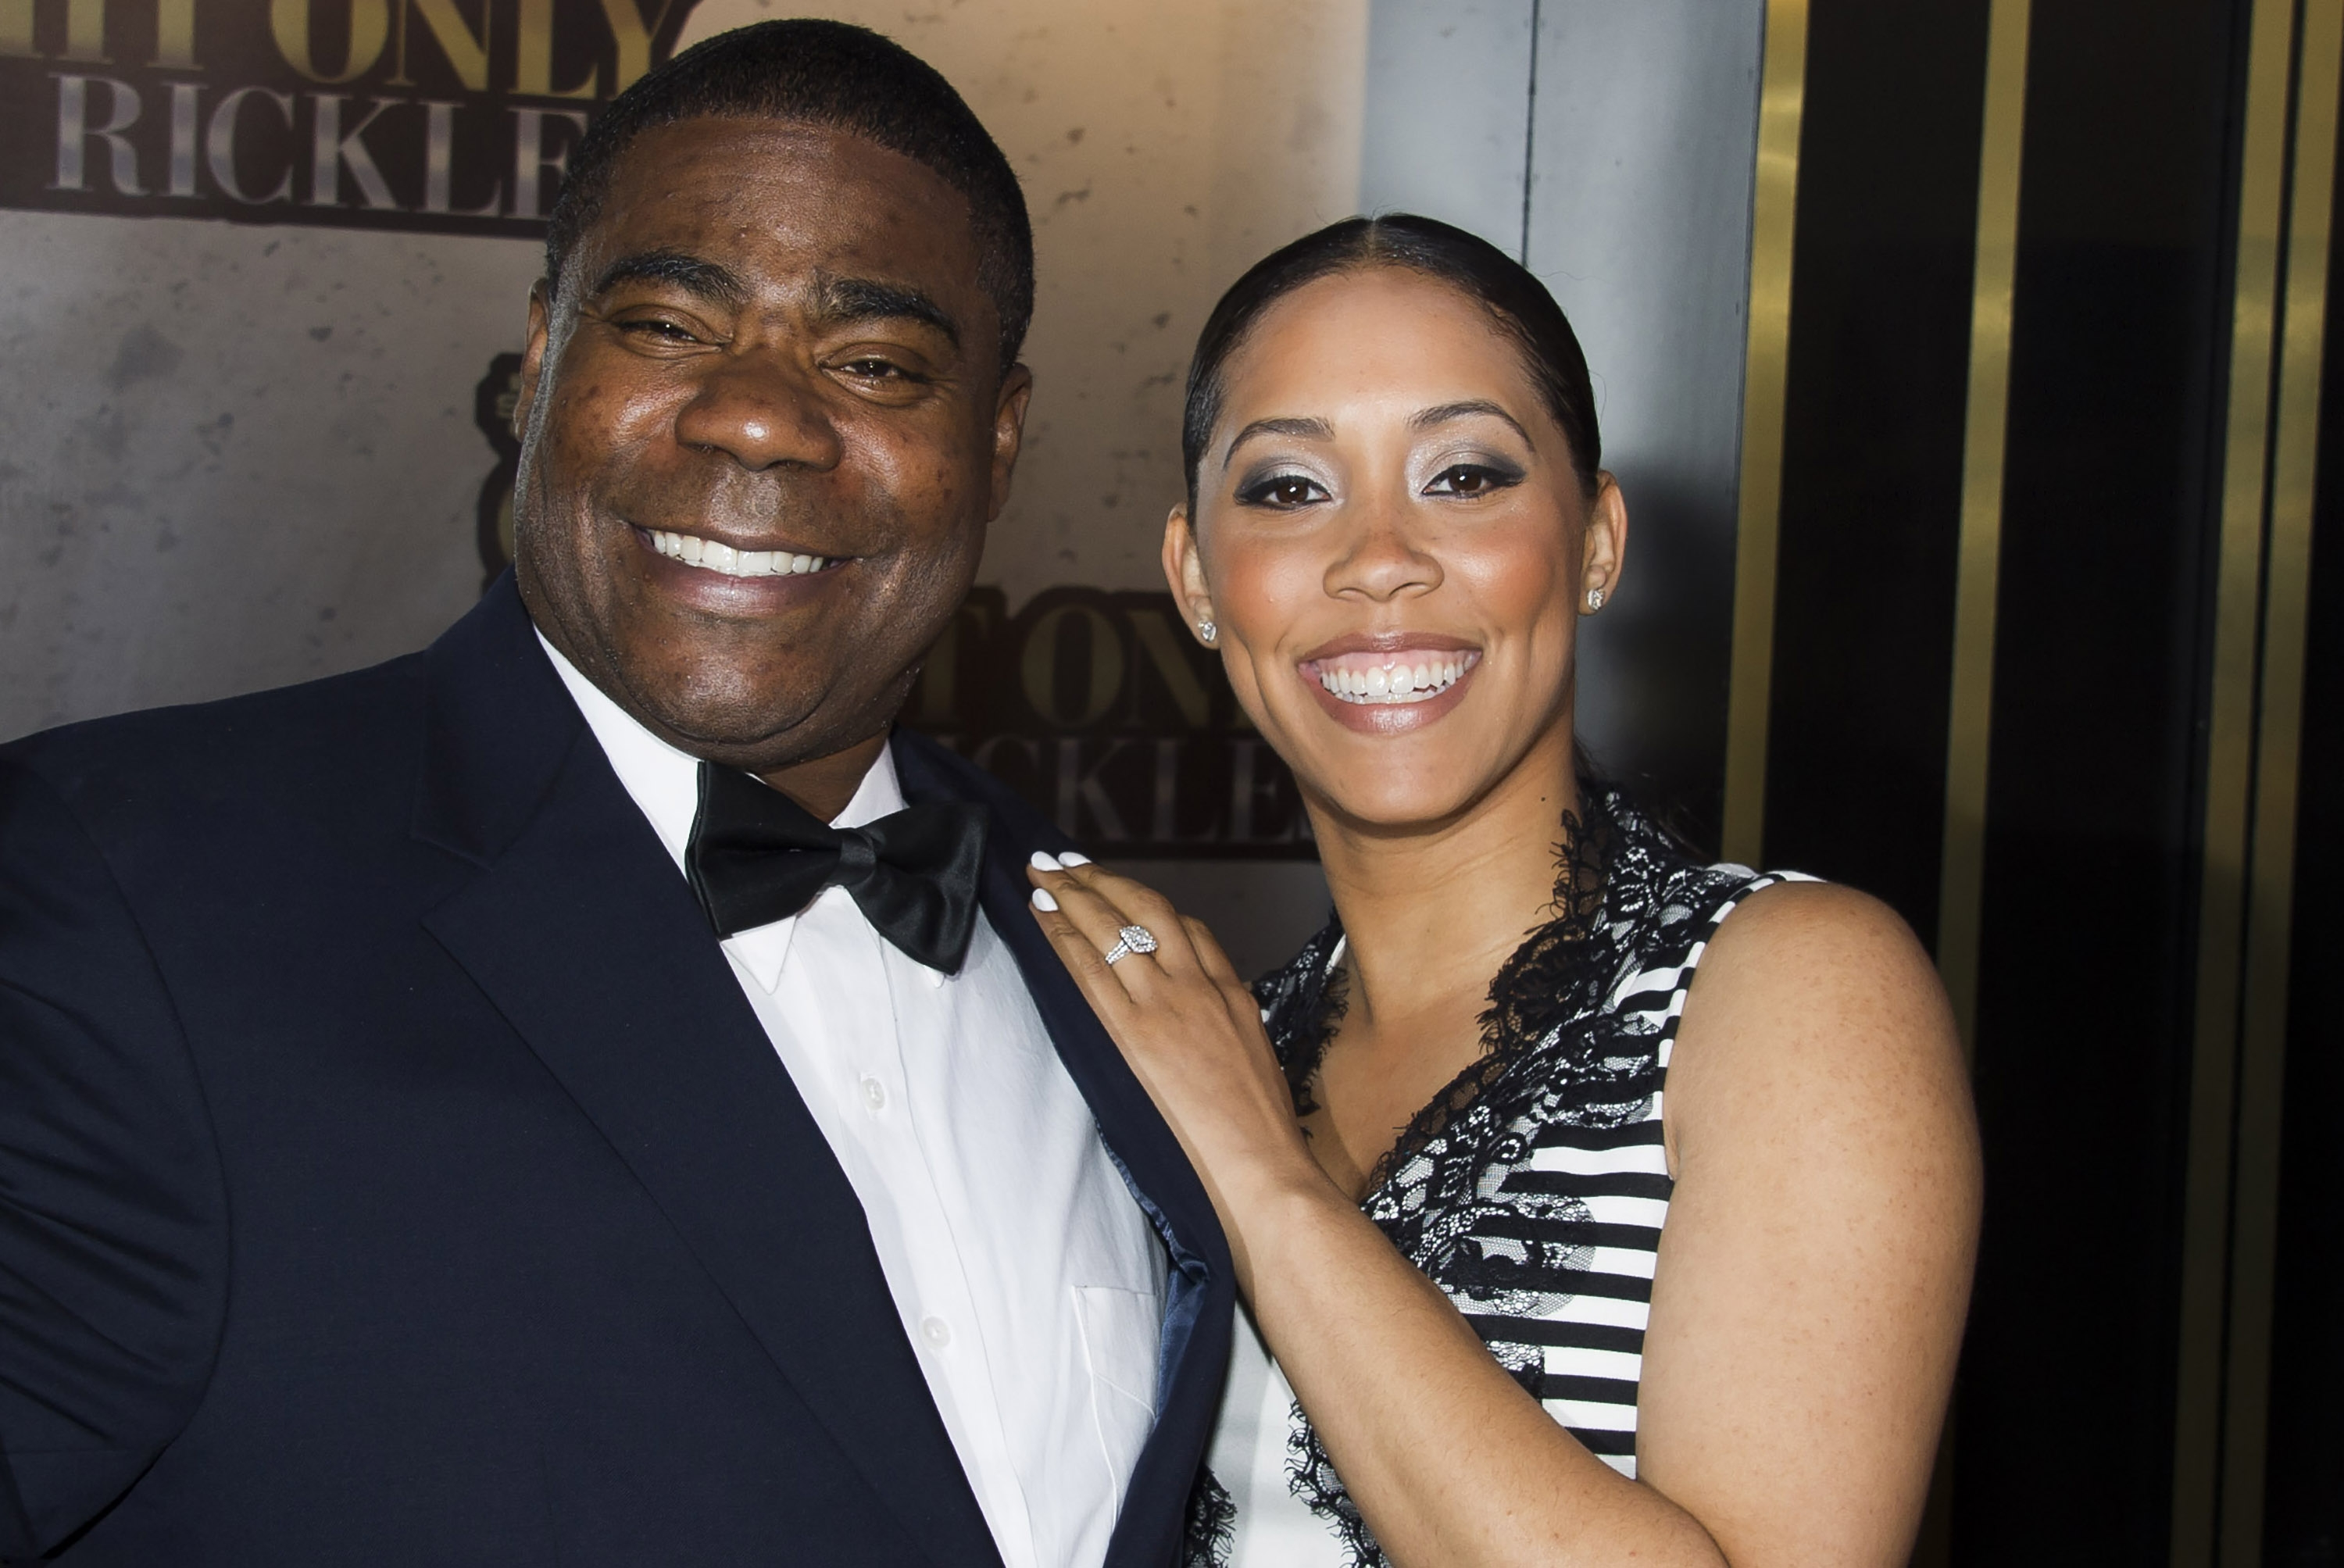 FILE - In this Tuesday, May 6, 2014, file photo, Tracy Morgan and Megan Wollover attend One Night Only: An All-Star Tribute To Don Rickles, in New York. Morgan married fiancee Wollover, Sunday, Aug. 23, 2015, according to Morgan's publicist, Lewis Key. Their 2-year-old daughter was in attendance. It is Morgan's second marriage. Photo: AP